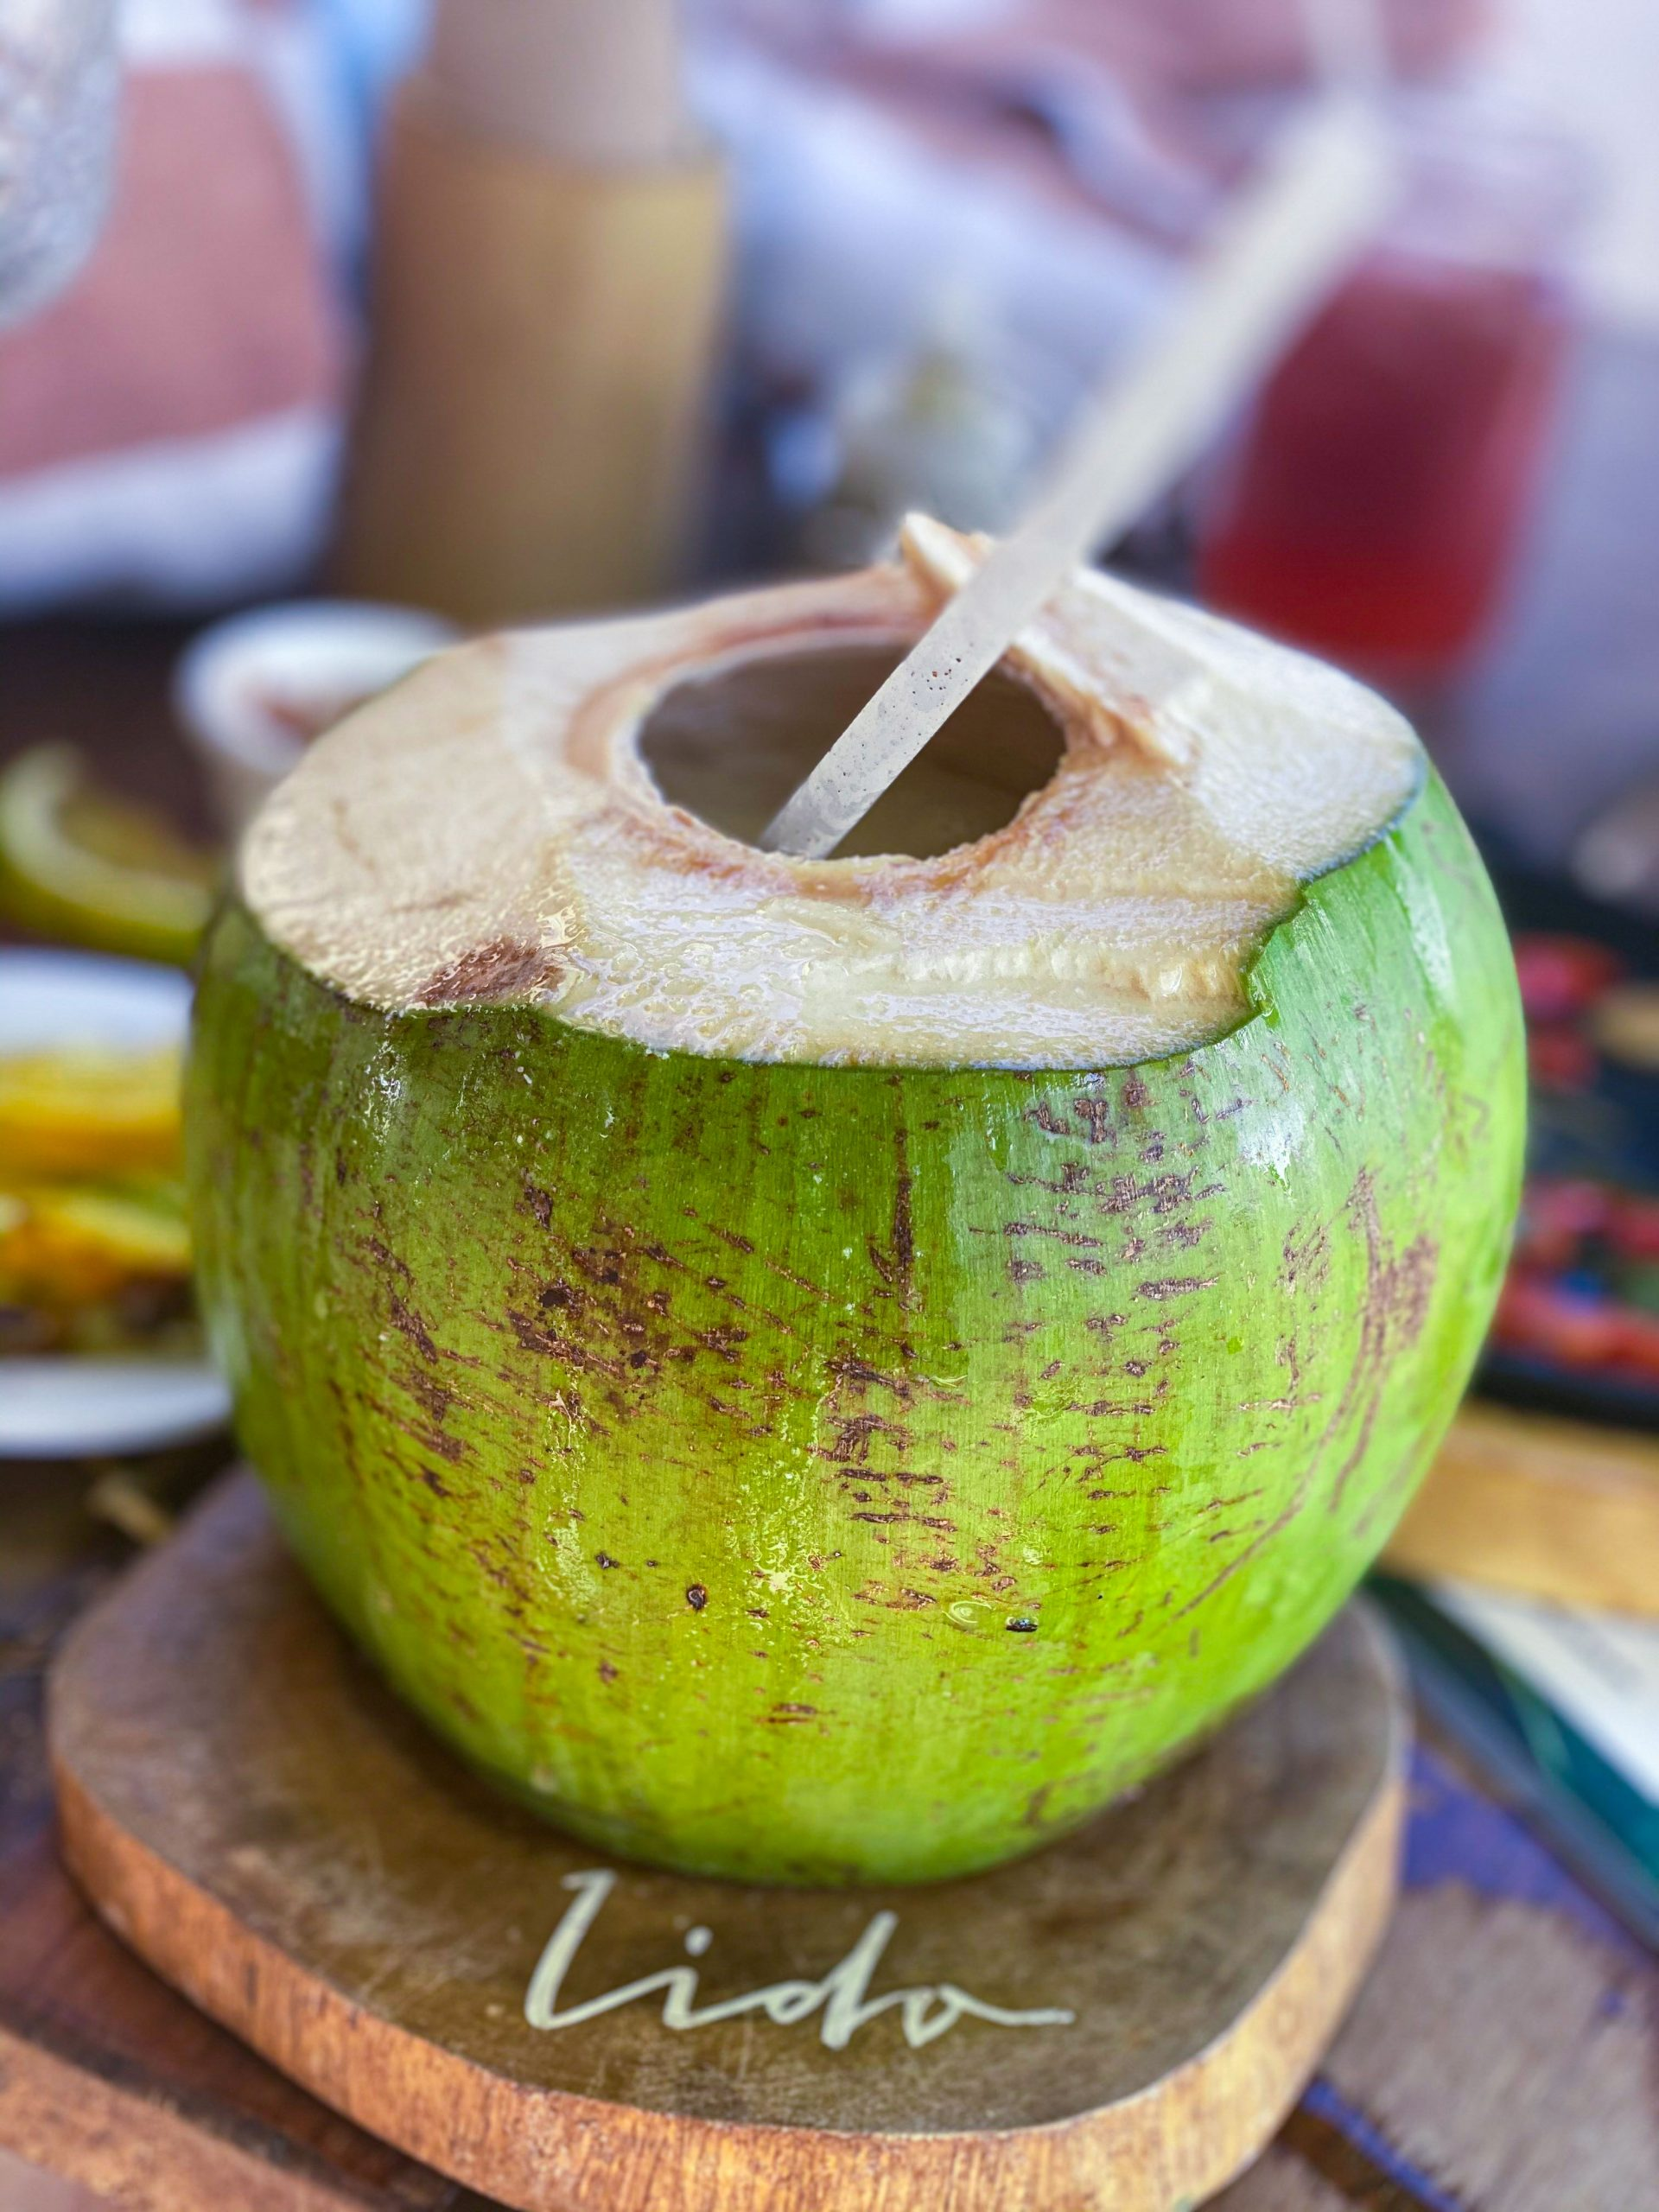 A cocktail in a green coconut